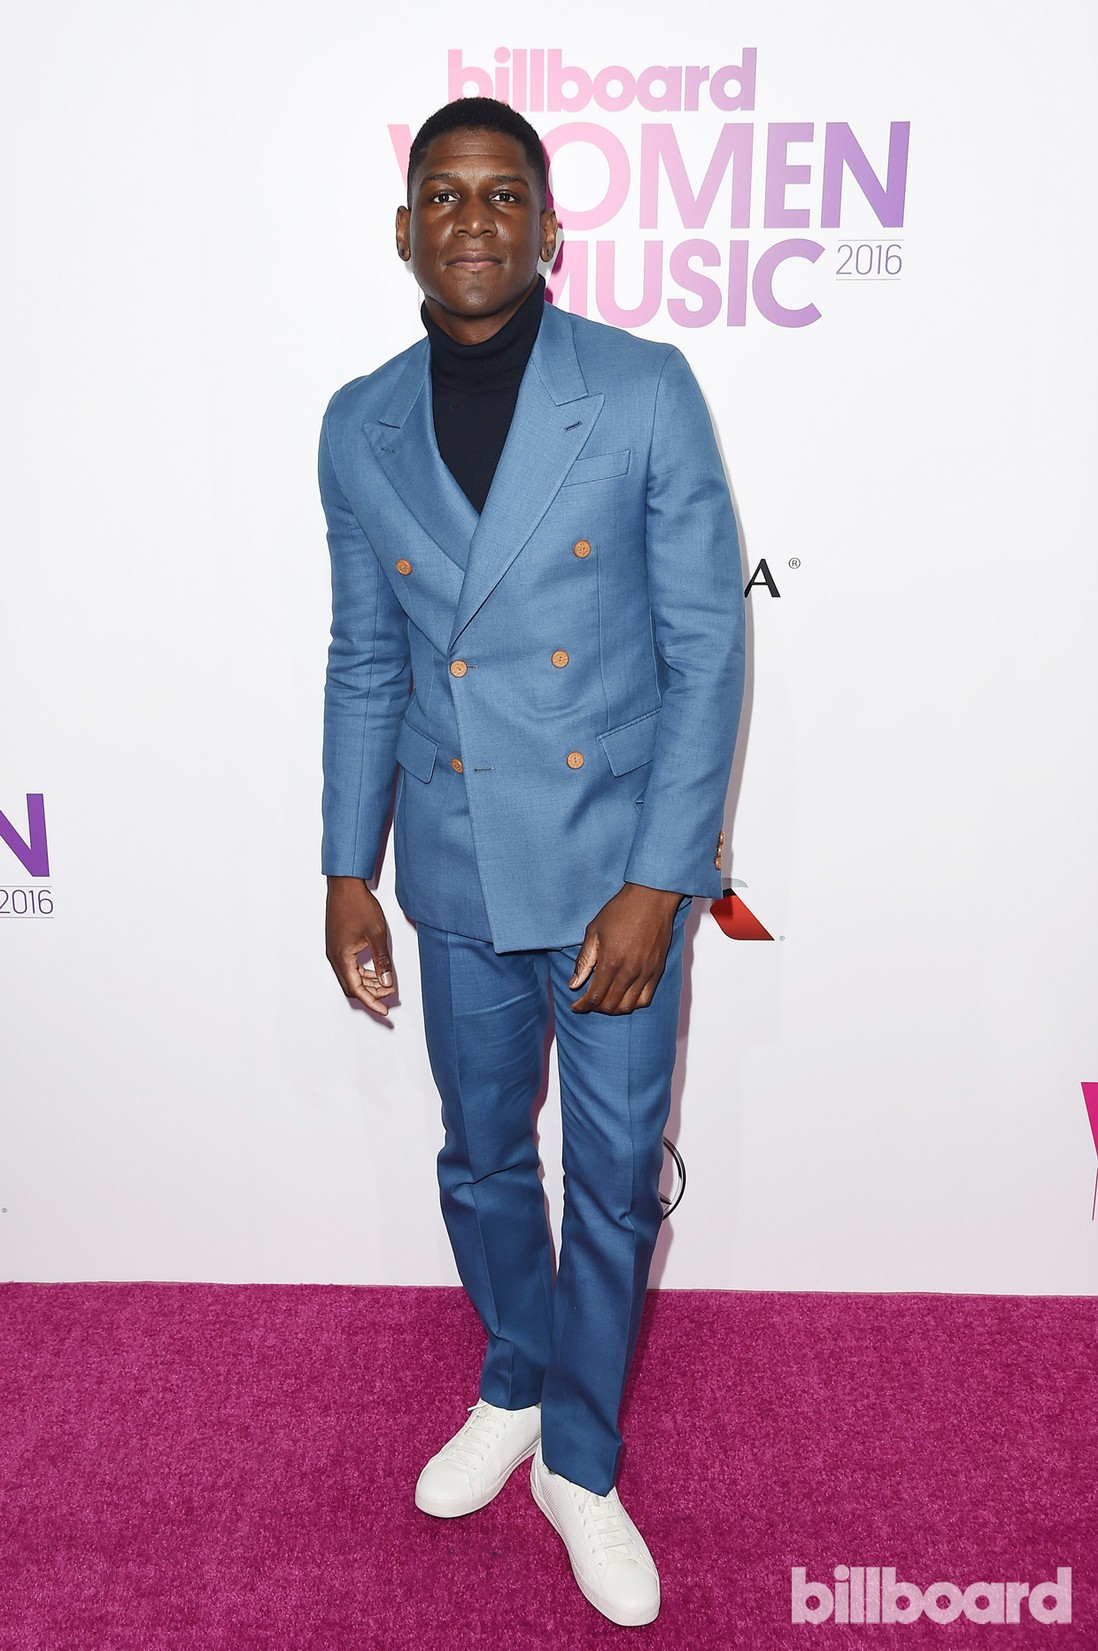 Labrinth attends the Billboard Women in Music 2016 event on Dec. 9, 2016 in New York City.